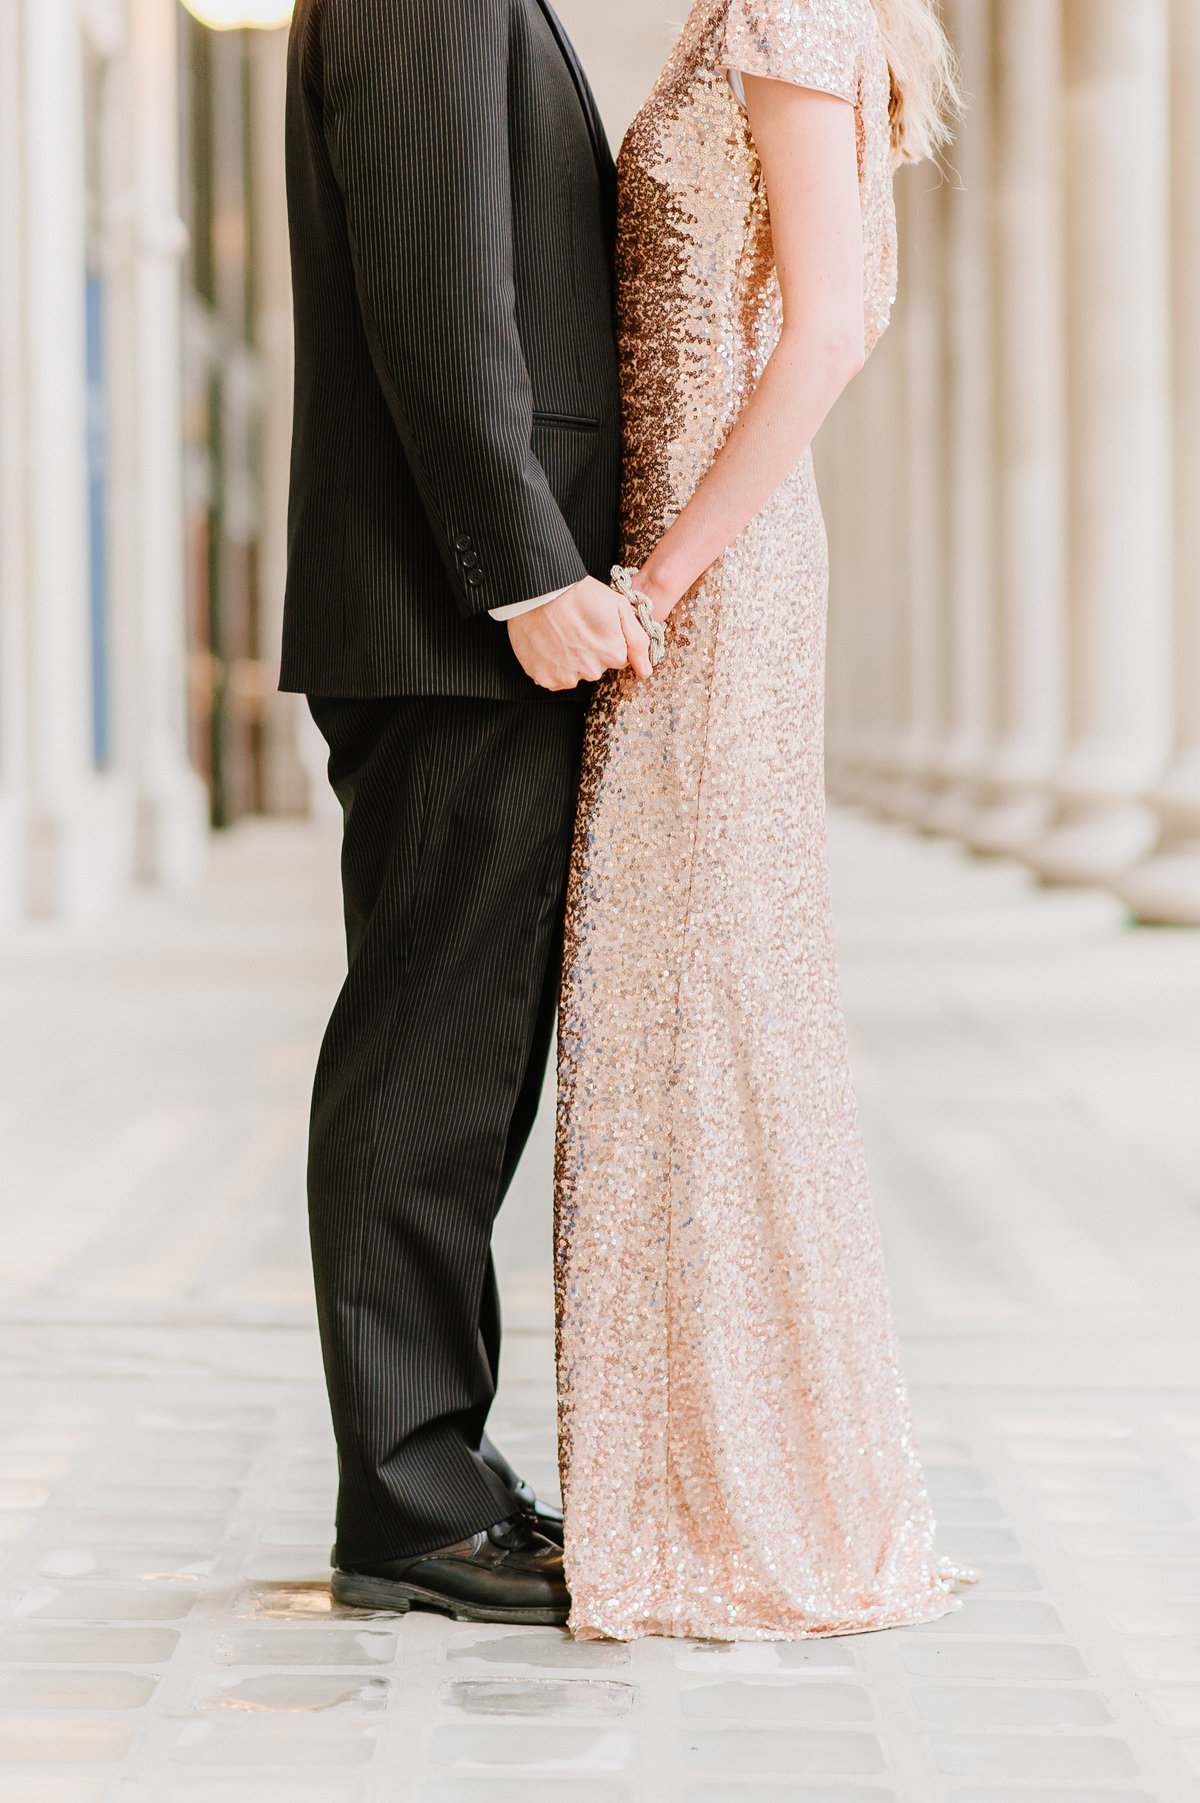 chicago-union-station-classy-photo-shoot-rose-gold-gown-rent-the-runway-photo-4